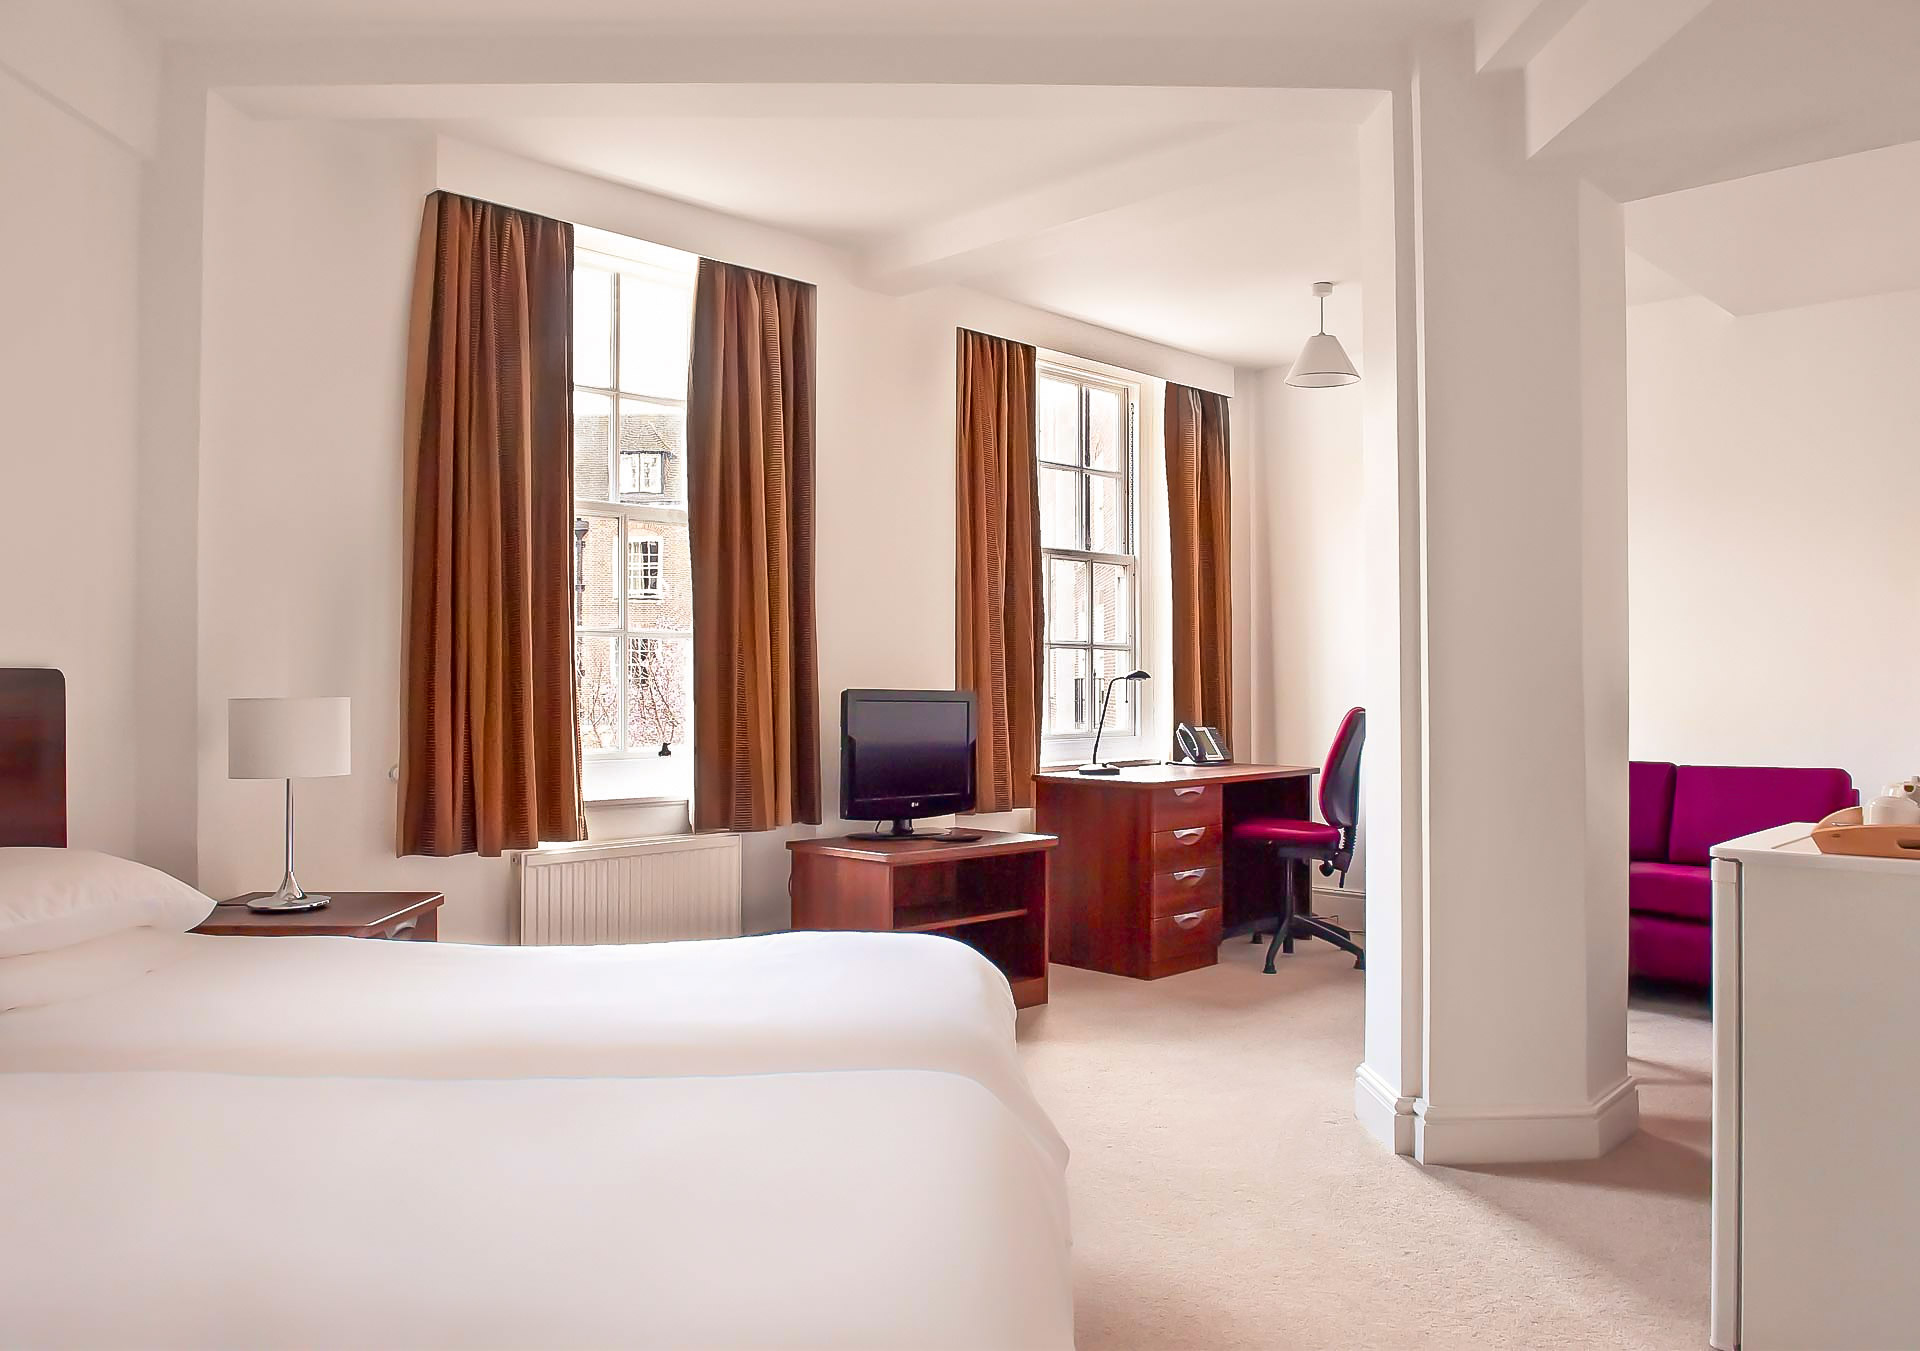 Book cheap stays in University rooms even if you're not a